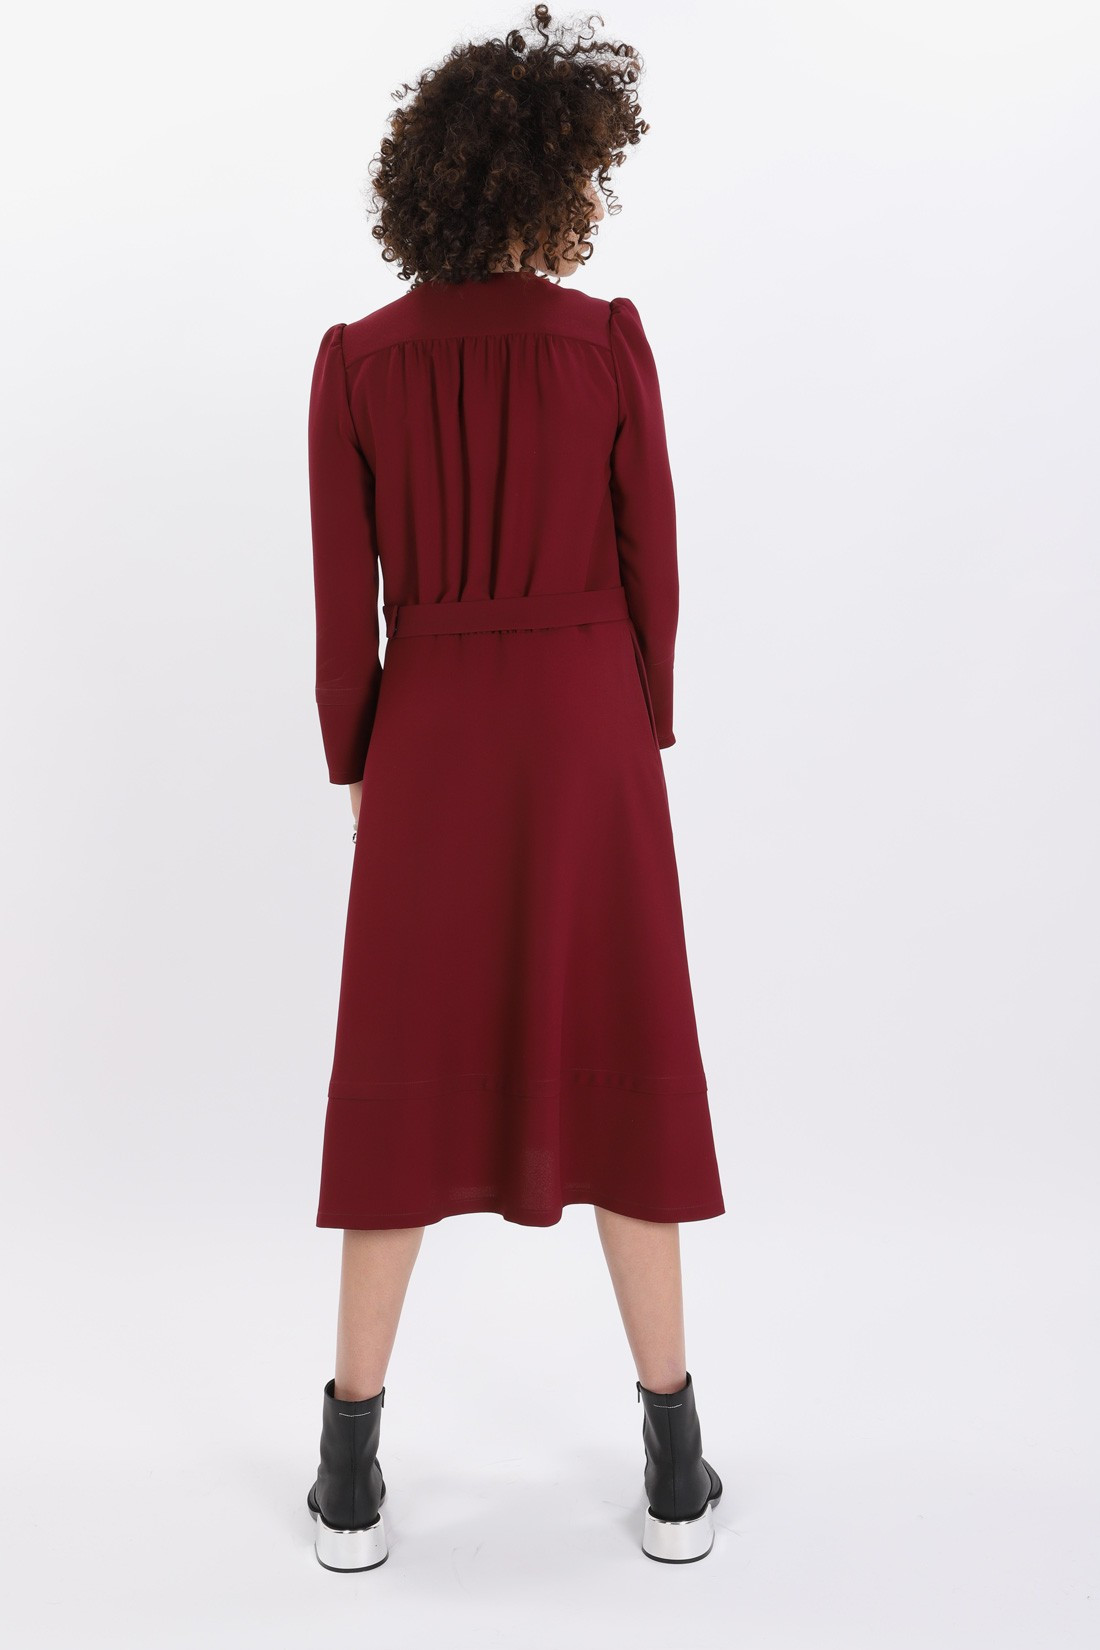 ac8ec7af24b A.p.c. for woman Robe bing Bordeaux - GRADUATE STORE